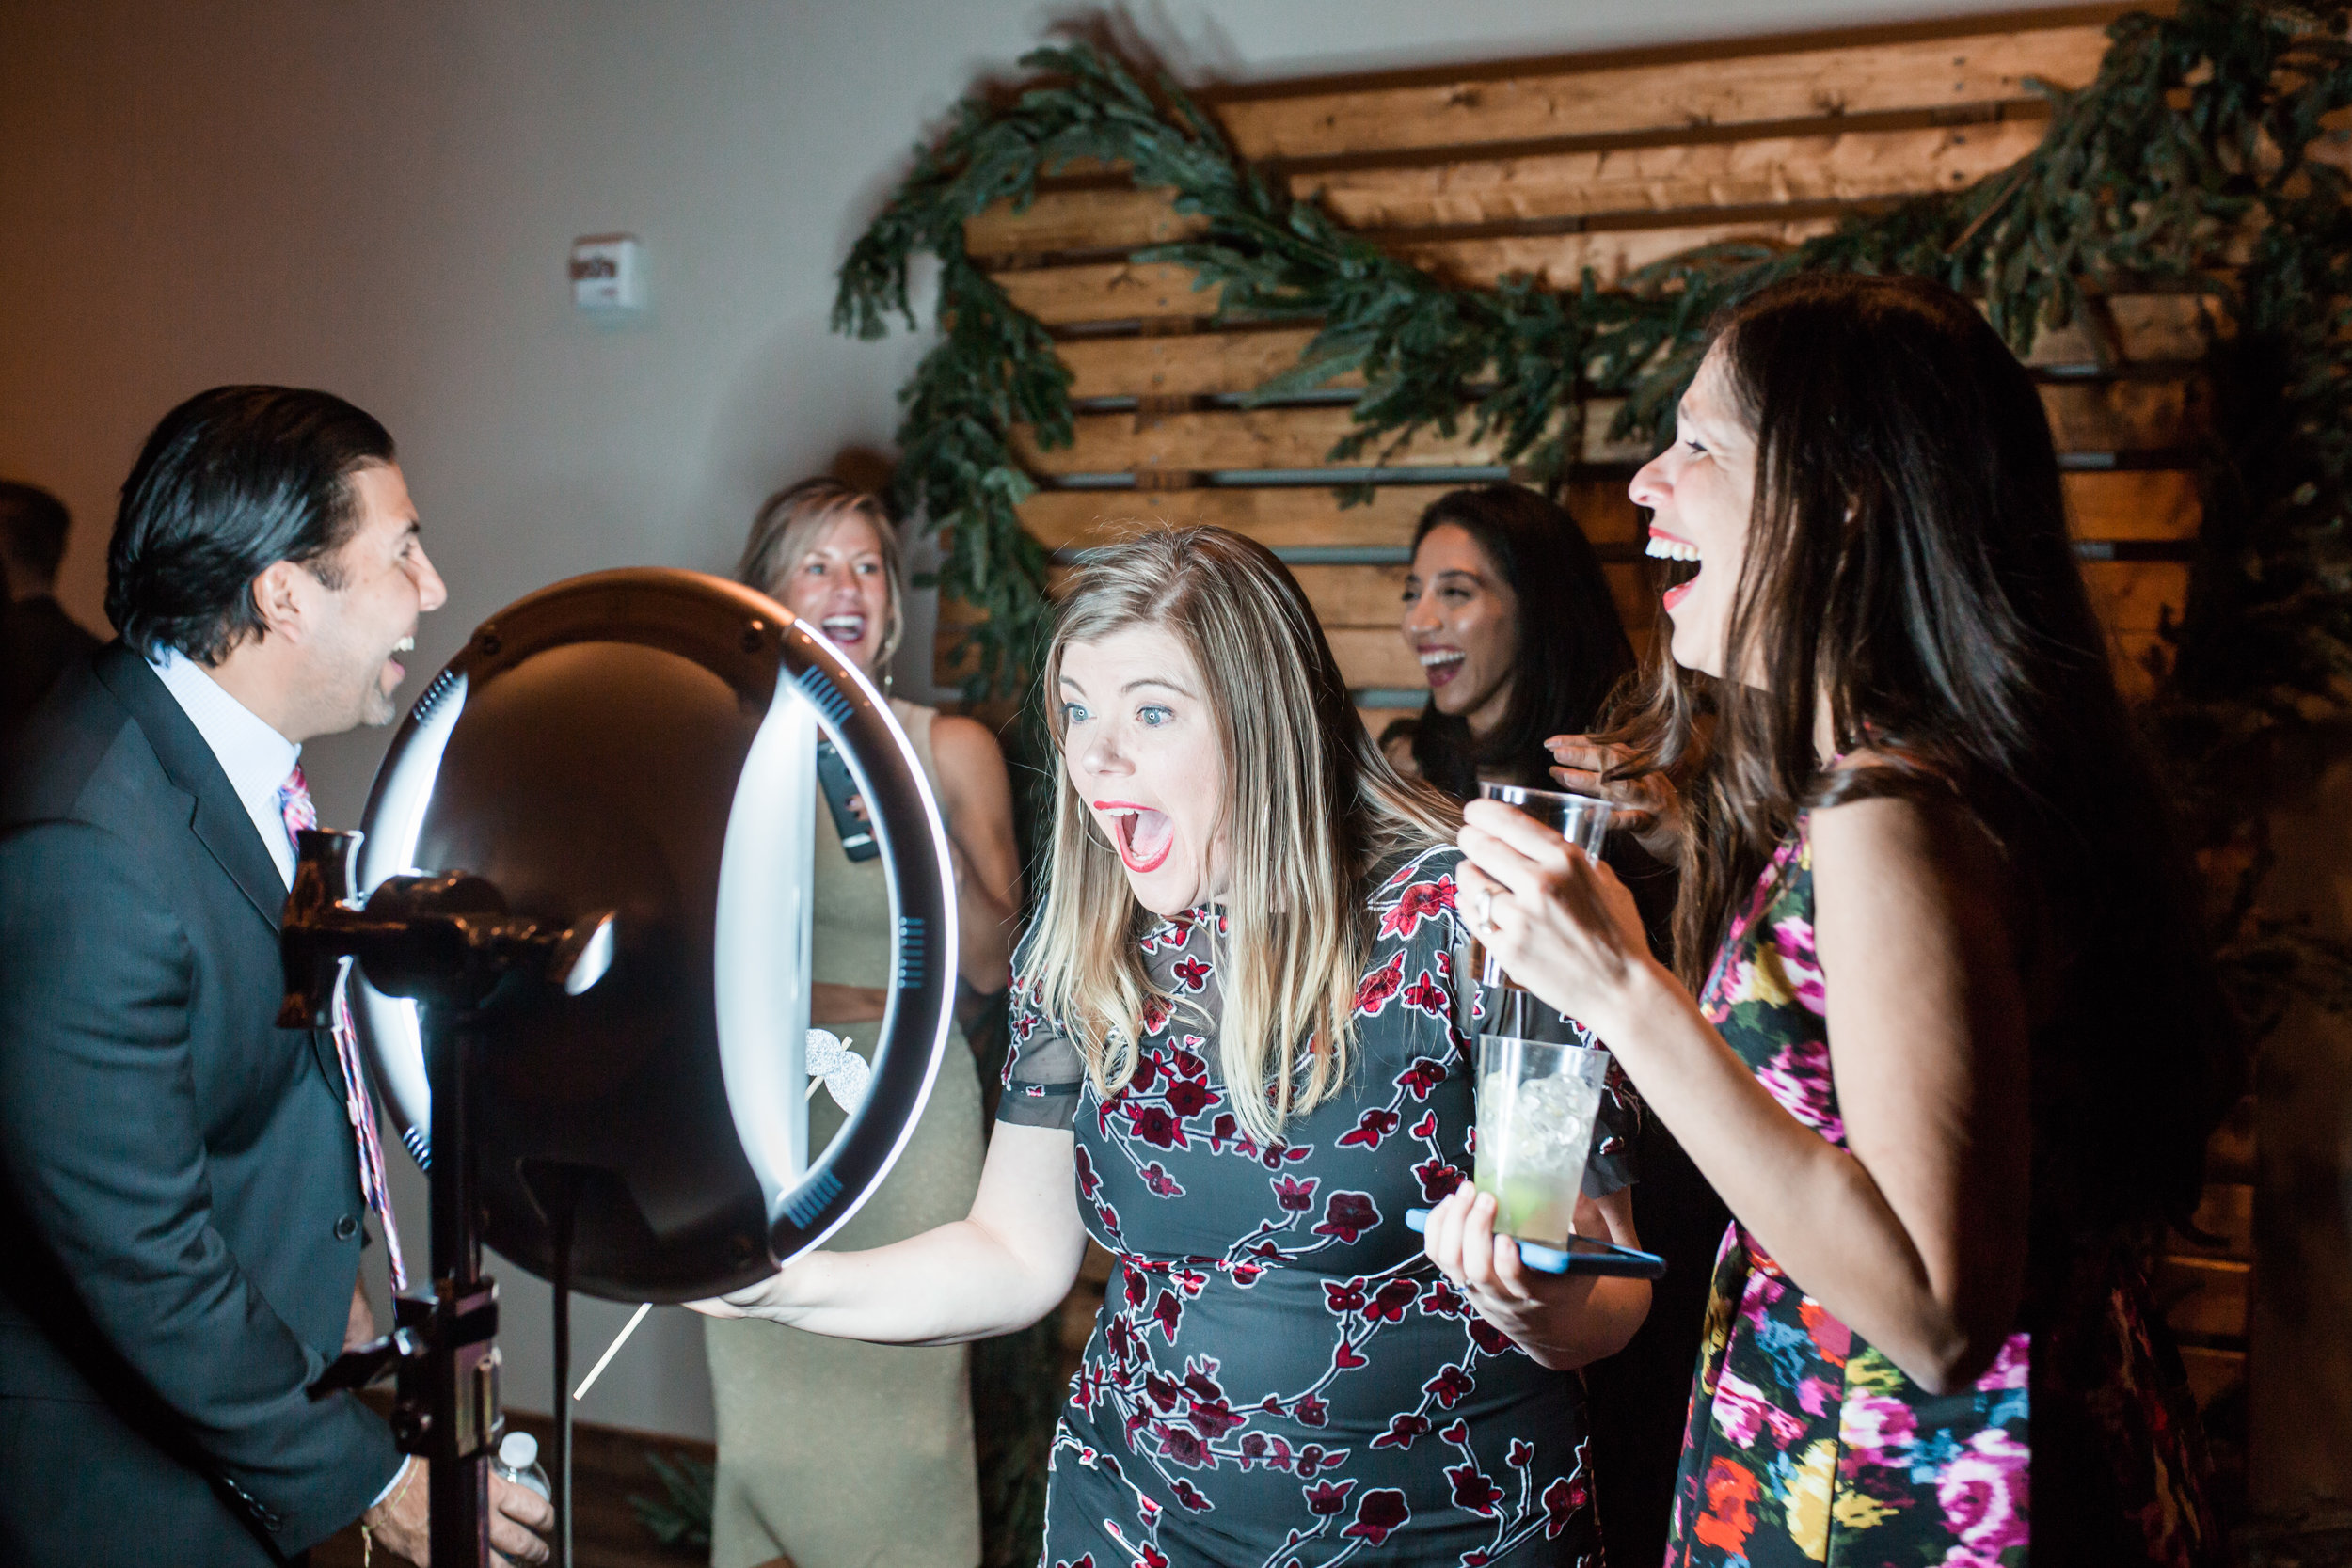 Who Are We? - Think Outside the Booth strives to take your photo booth experience to the next level. You won't know where your photo booth ends and your party begins.